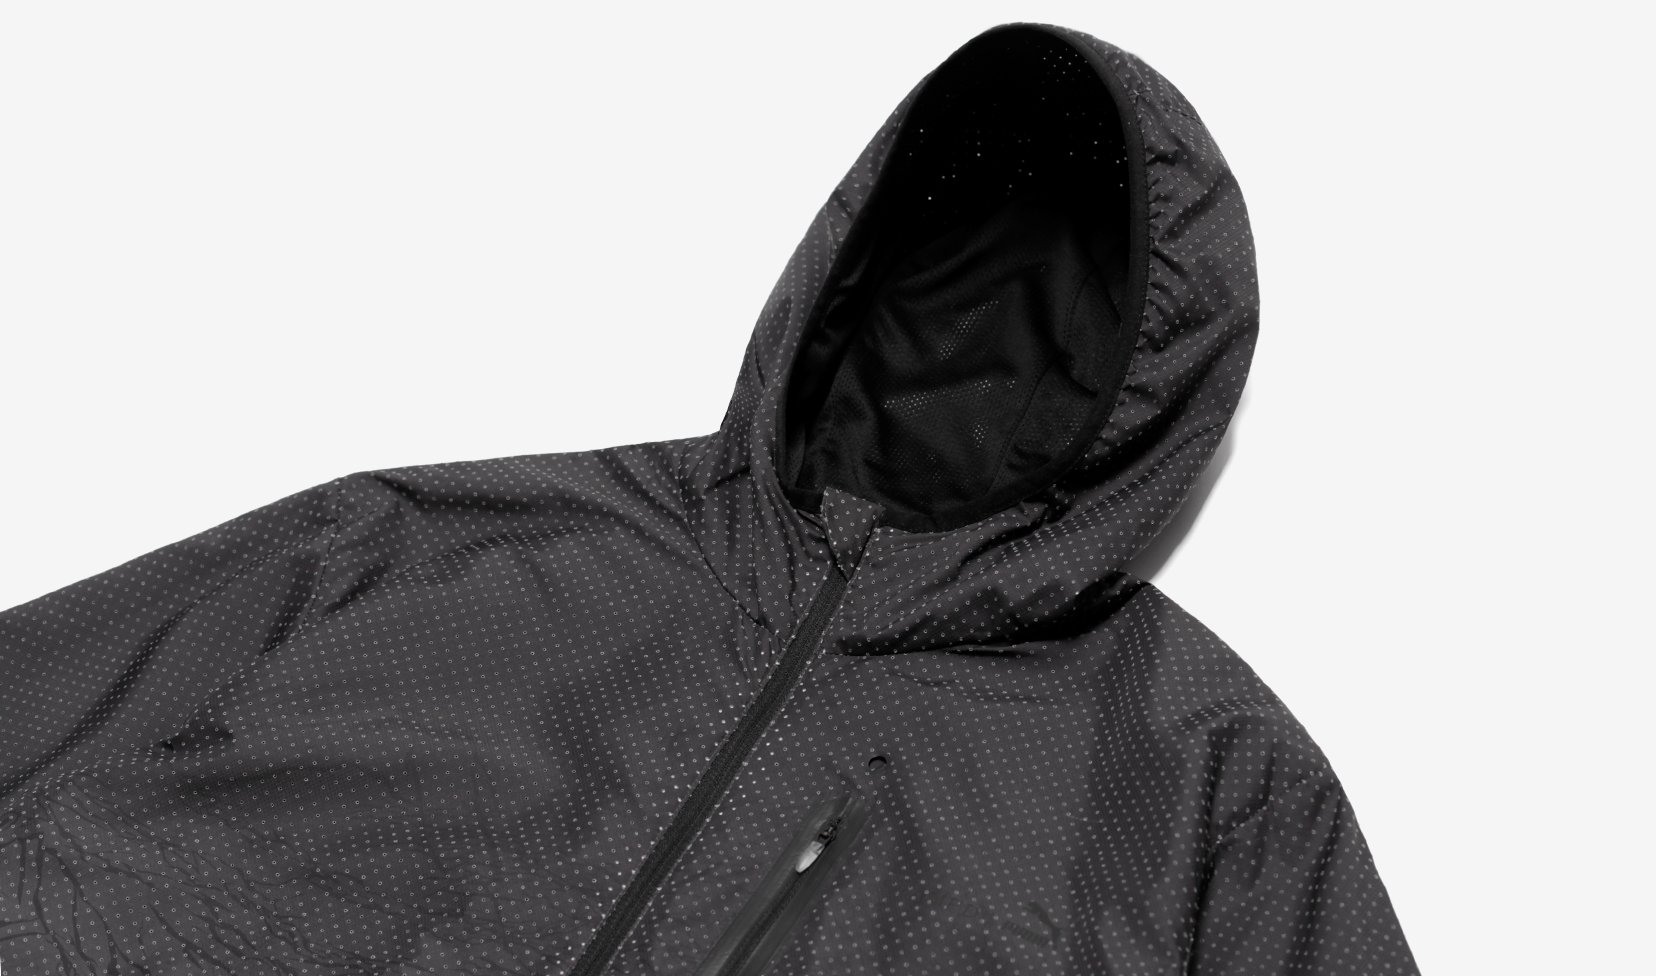 9000e0367184 Stampd x Puma Tech Windbreaker - Black Gradation